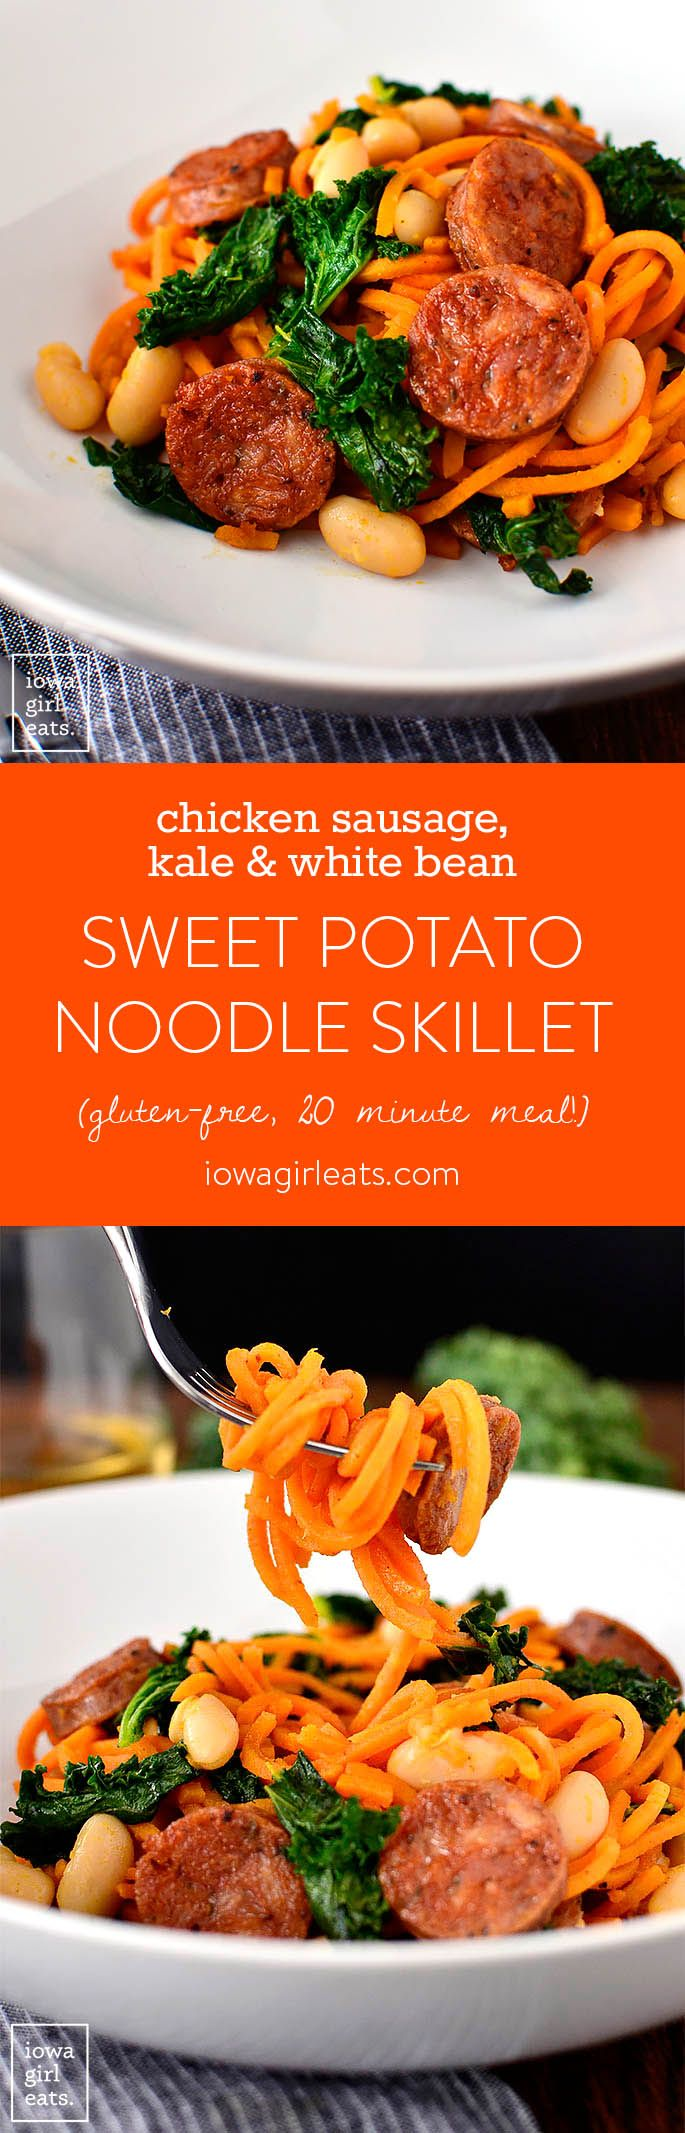 Chicken Sausage, Kale and White Bean Sweet Potato Noodle Skillet is a quick and healthygluten-free dinner recipe. Ready in 20 minutes or less and full of protein, fiber, and vitamins!   iowagirleats.com